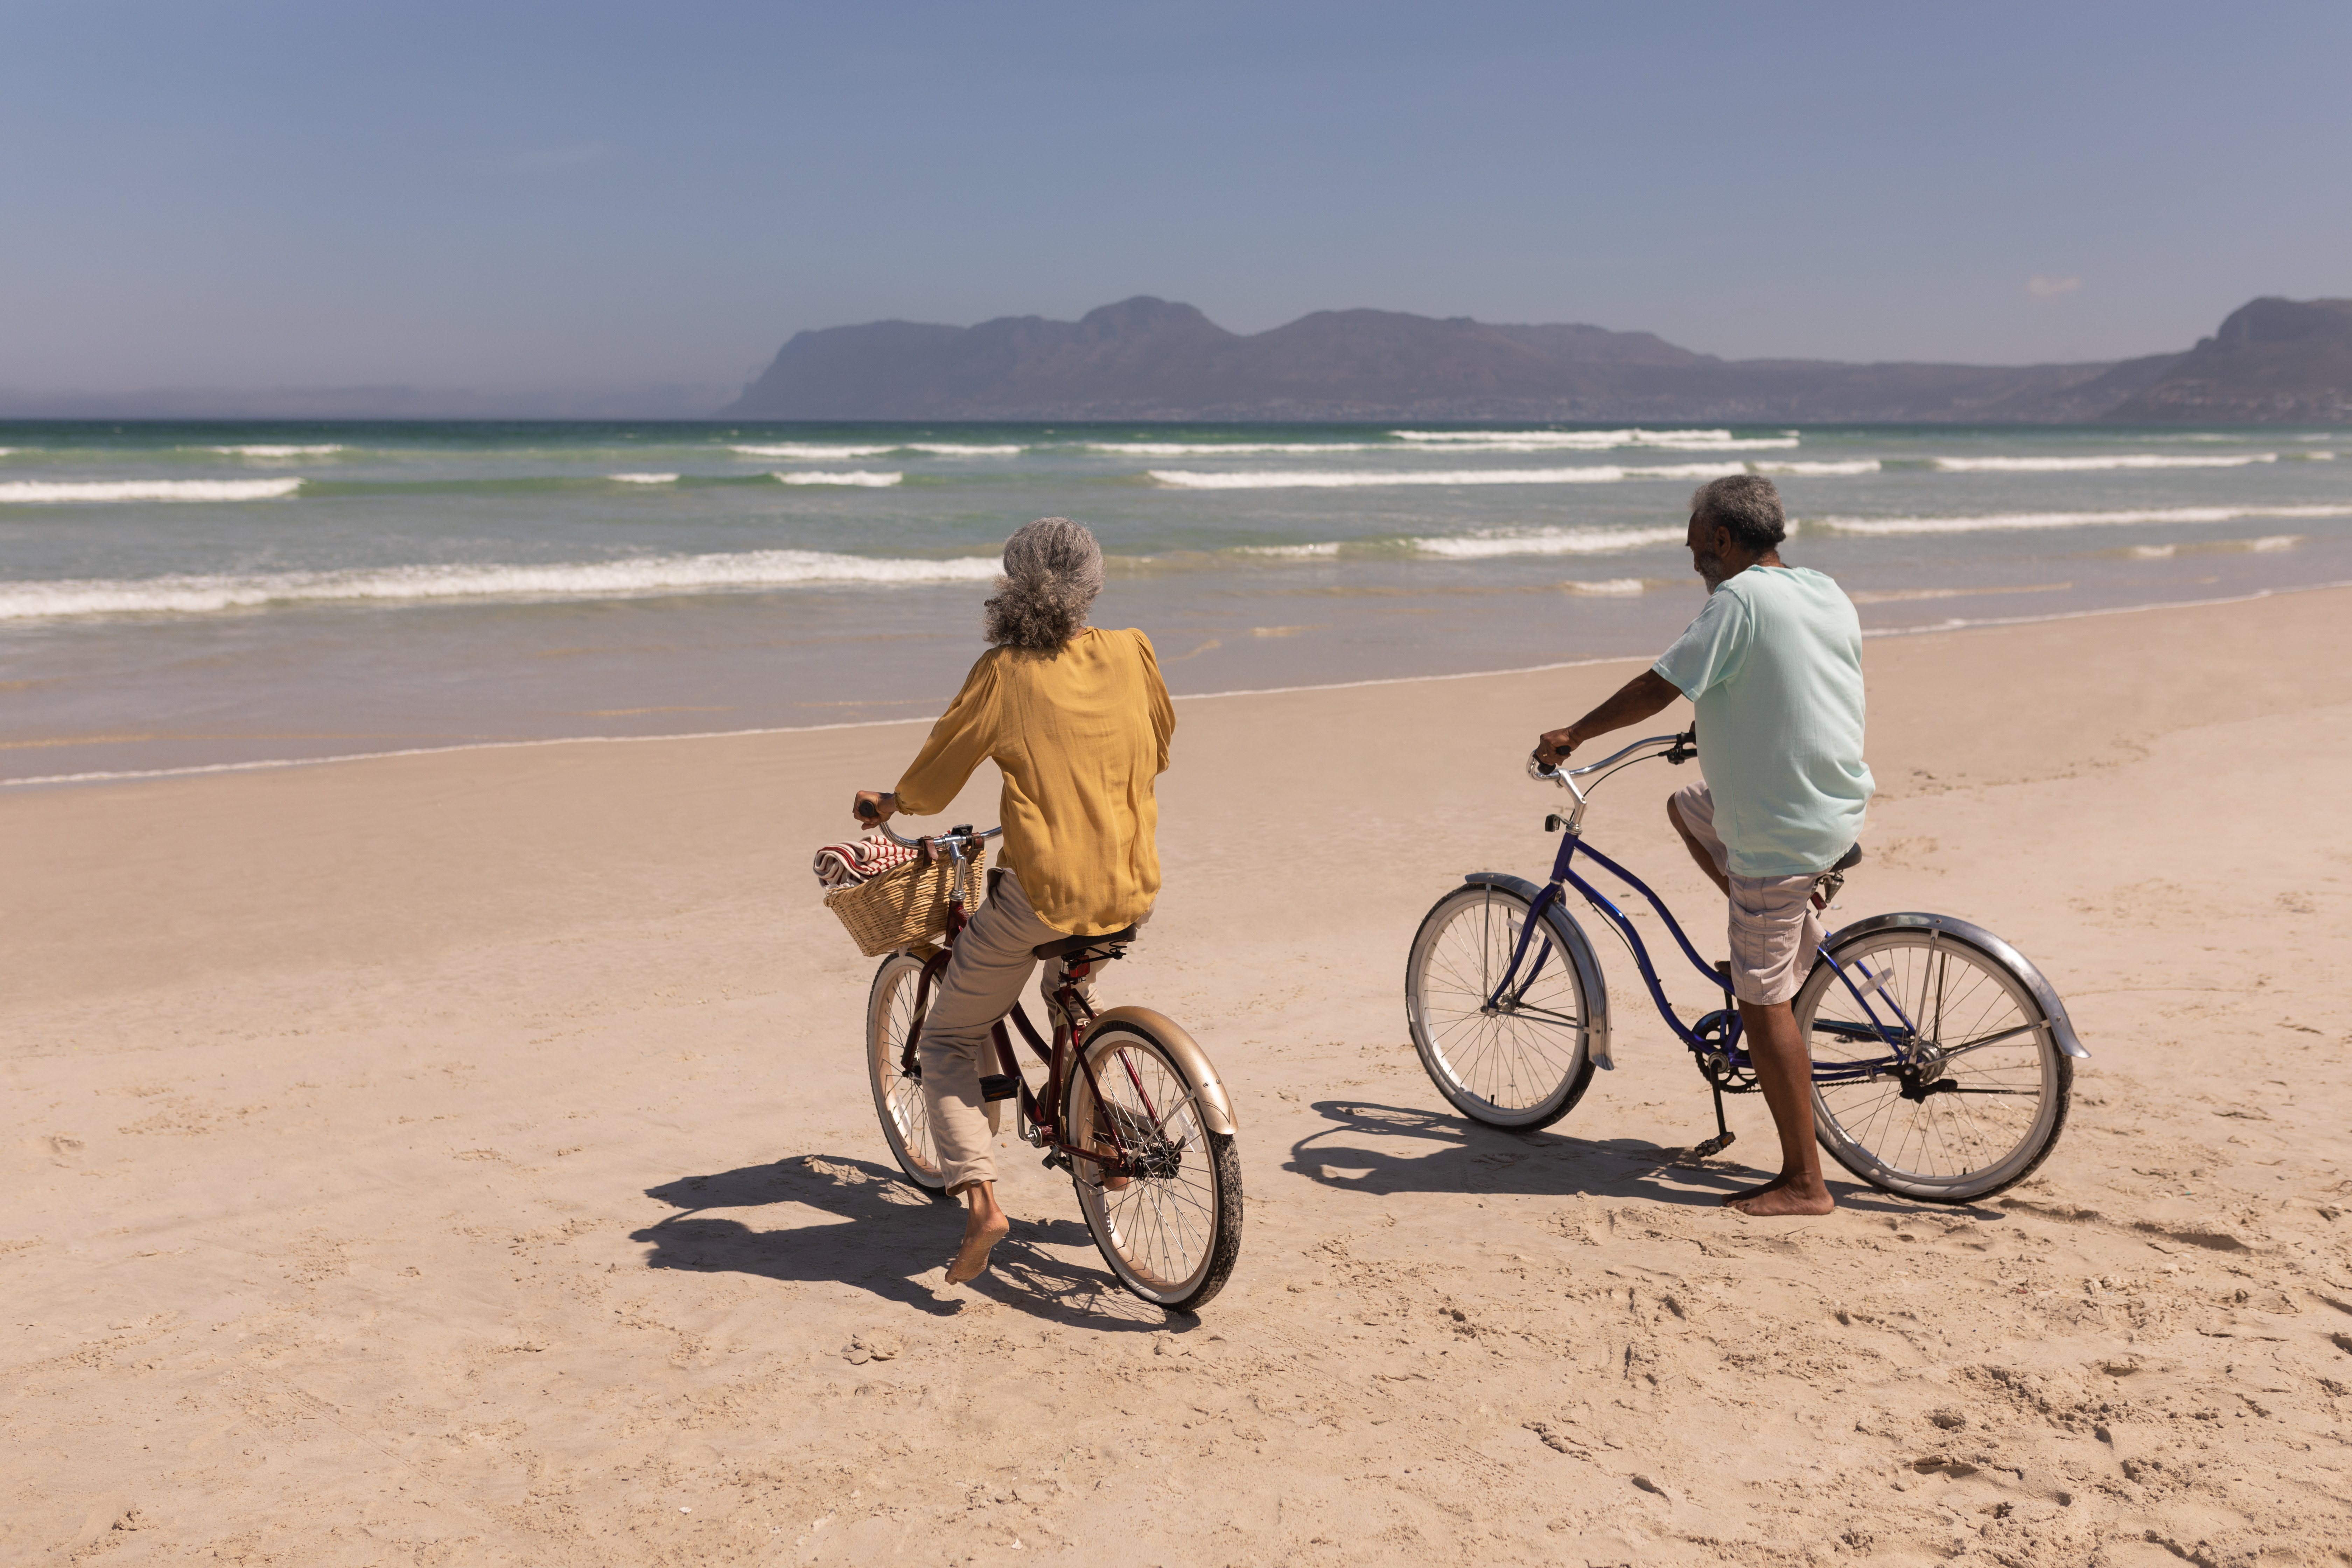 senior-couple-with-bicycle-standing-on-beach-in-th-HTSZQDA